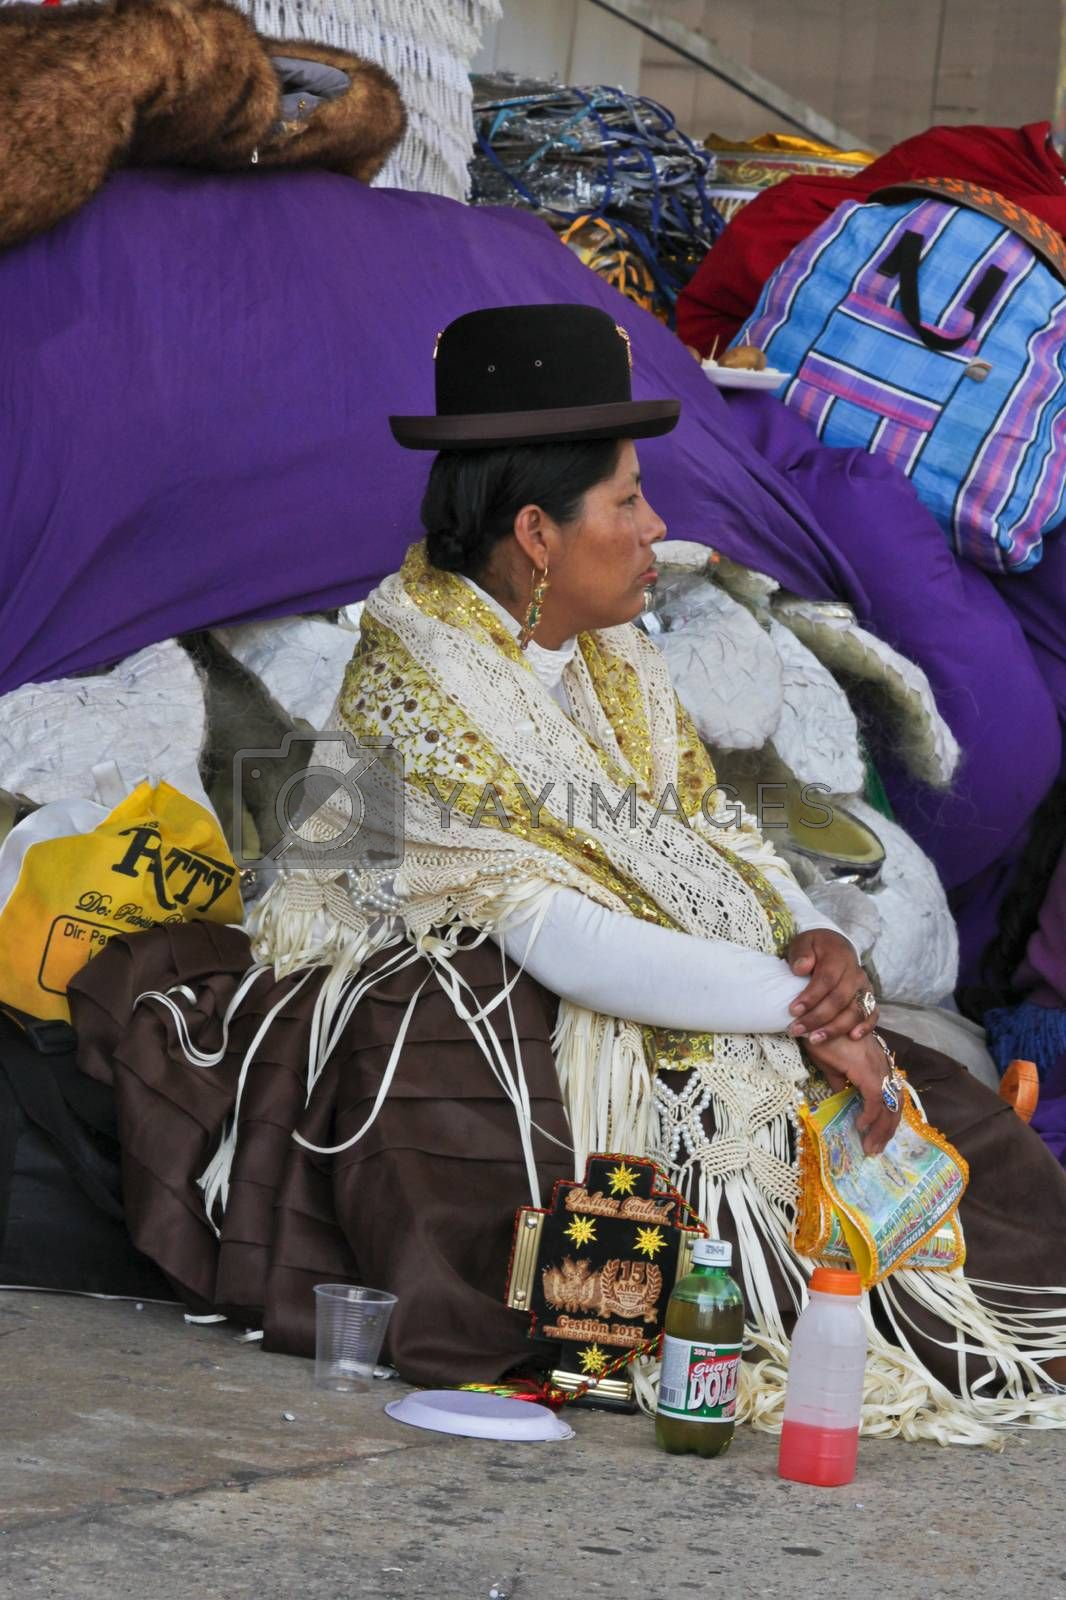 SAO PAULO, BRAZIL August 9 2015: An unidentified woman with typical costumes wait for the Morenada parade in Bolivian Independence Day celebration in Sao Paulo Brazil.